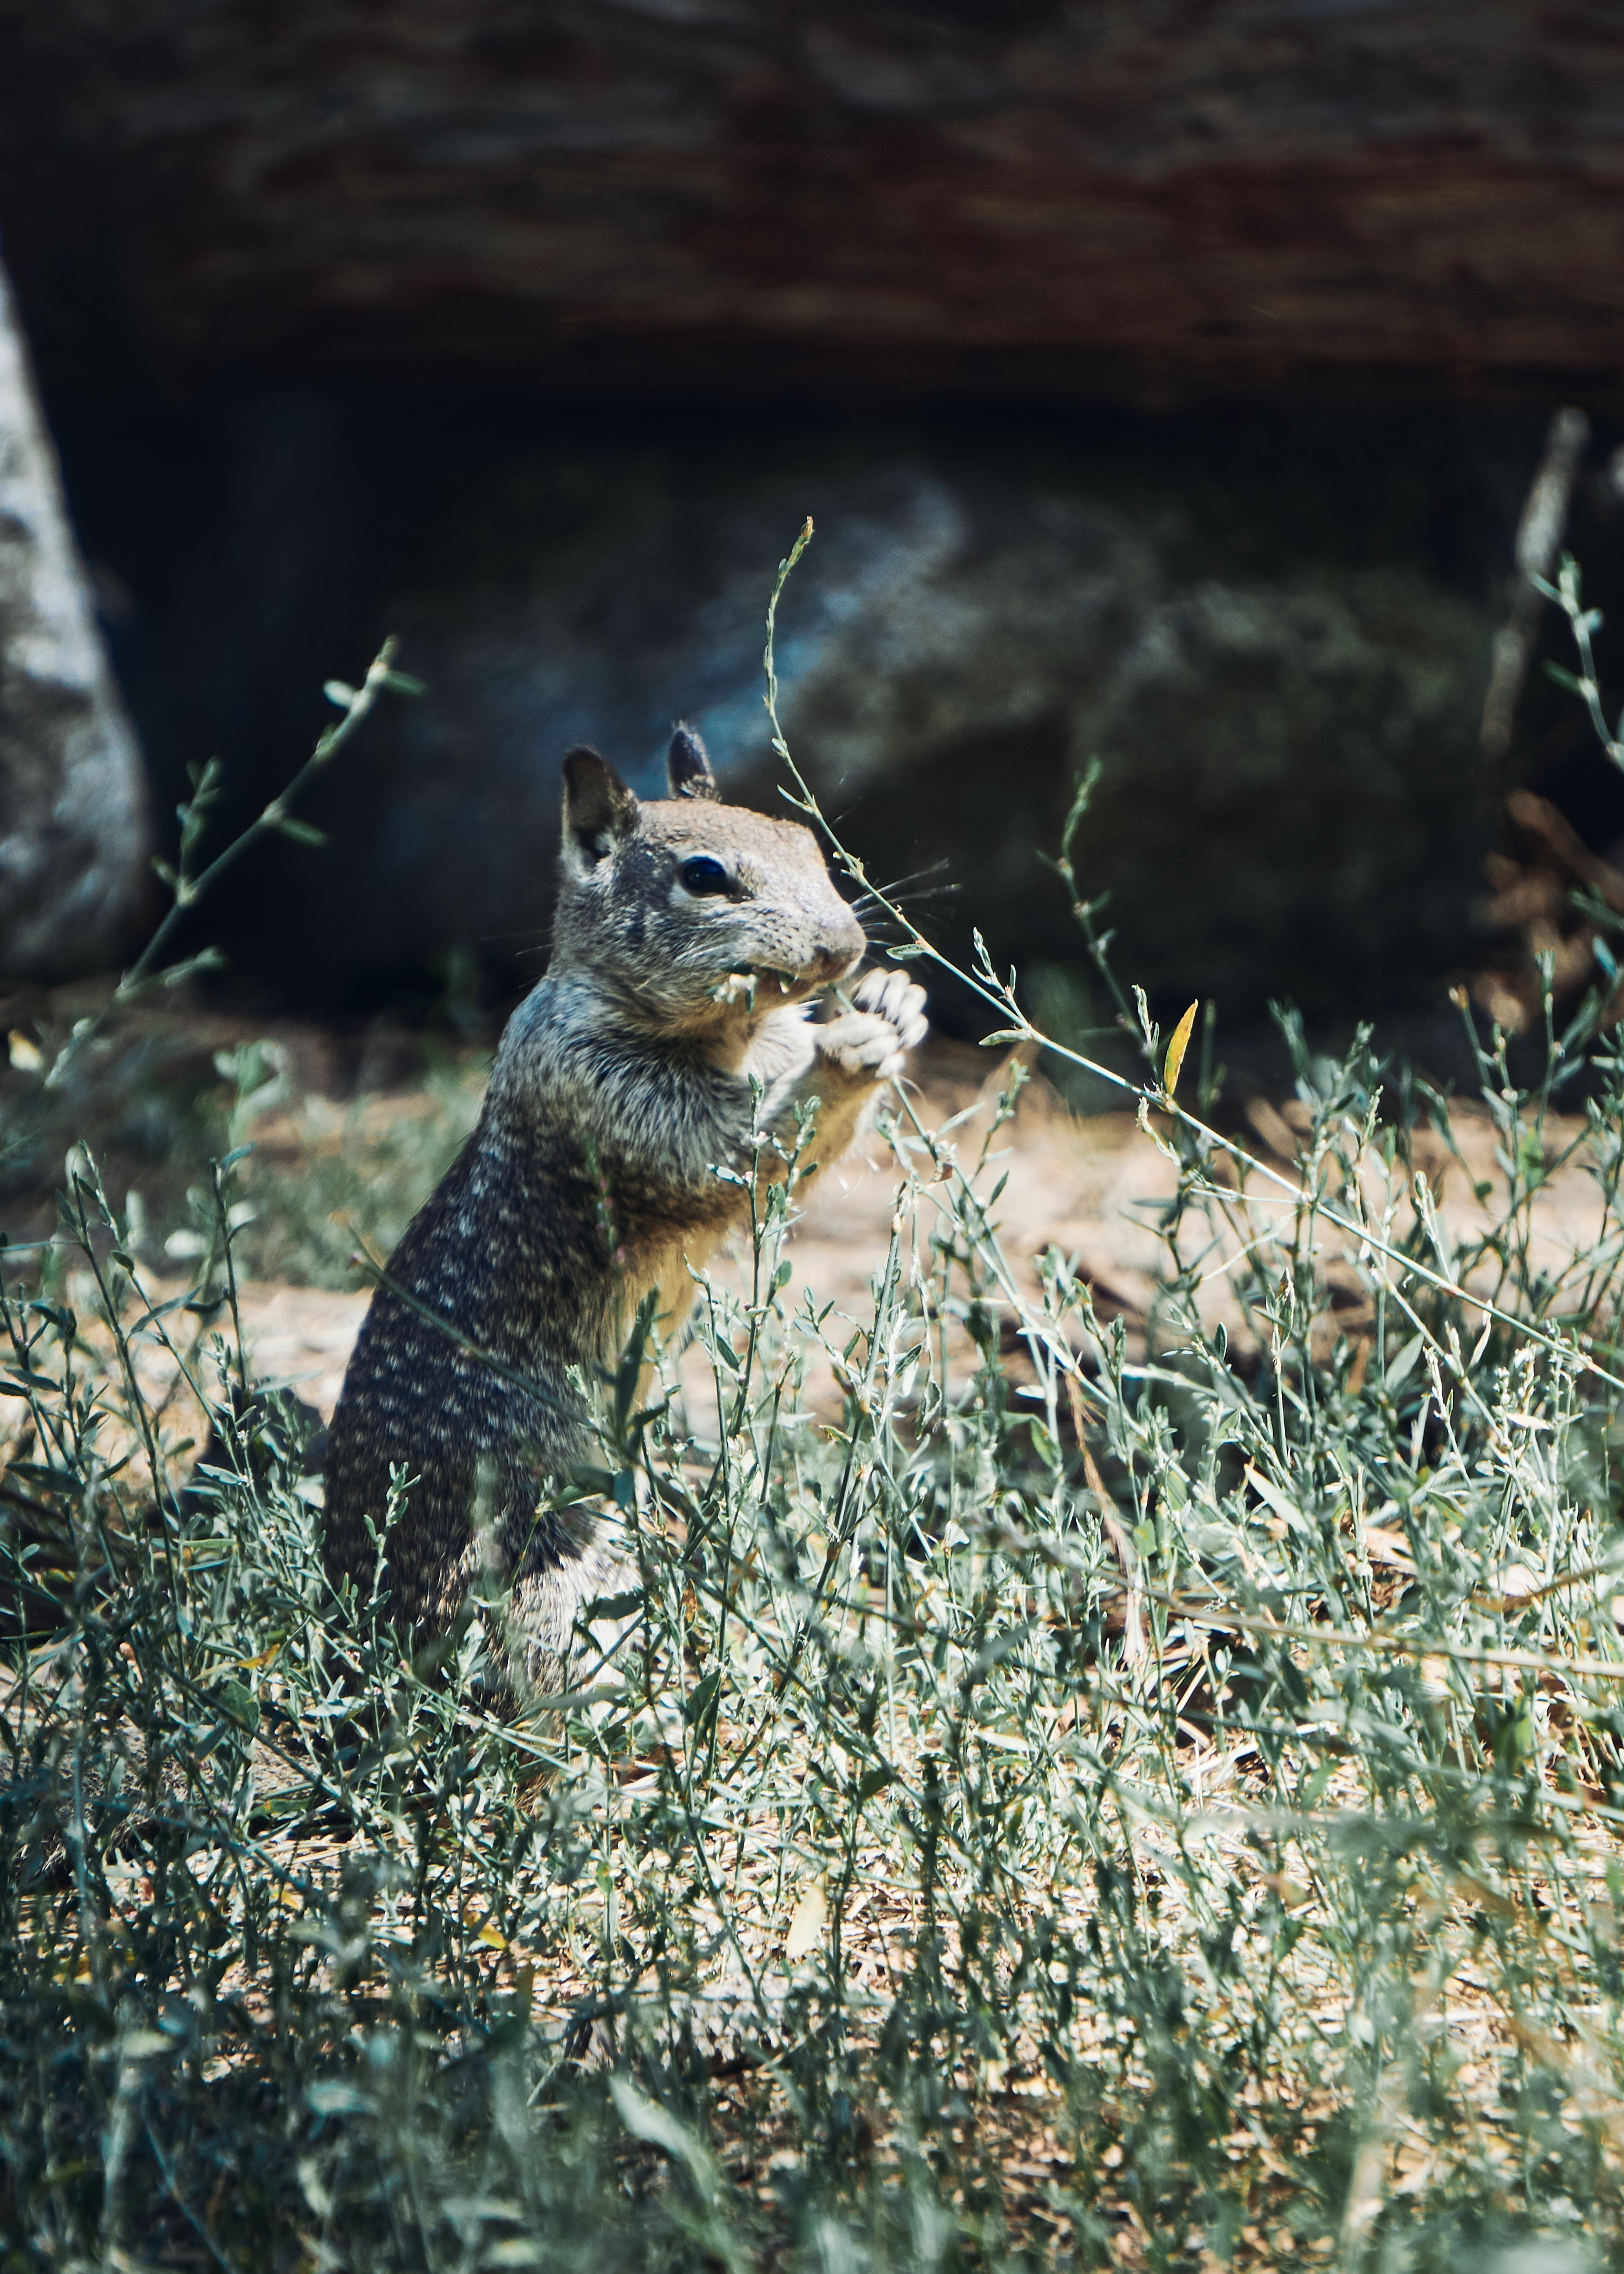 101845 download wallpaper Animals, Squirrel, Rodent, Animal, Grass, Wildlife screensavers and pictures for free